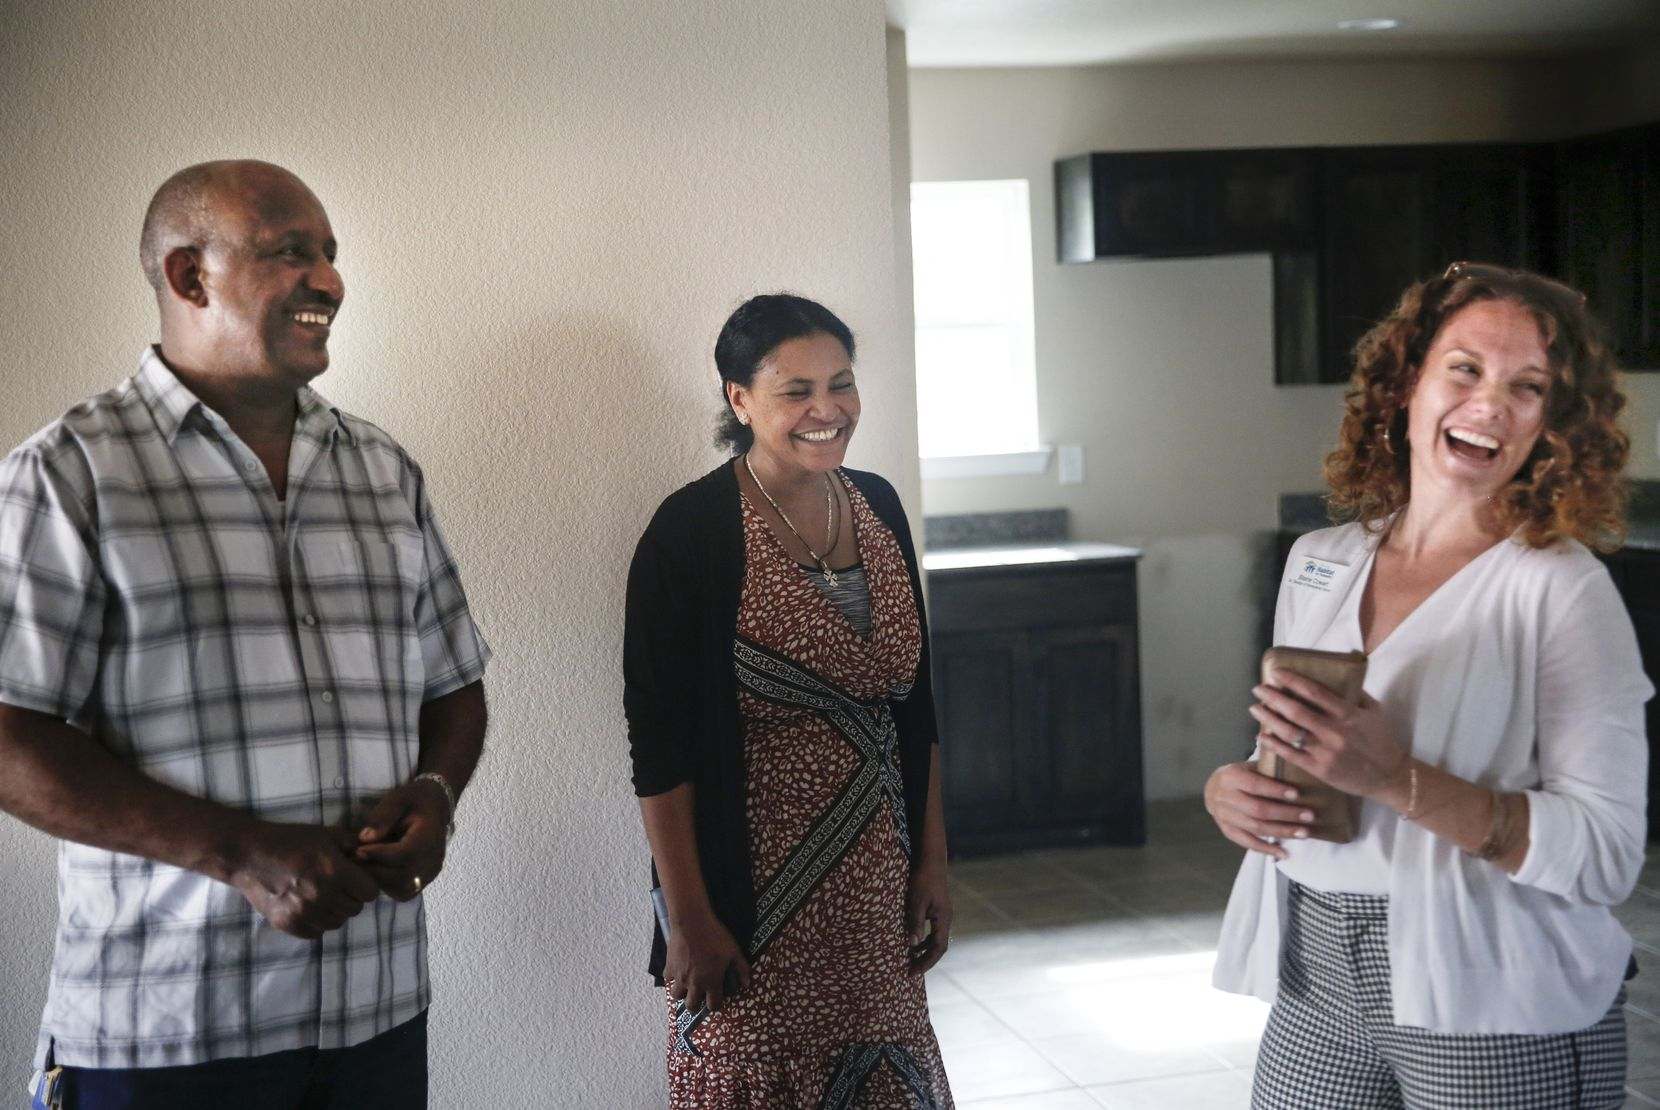 New homeowners Terefe Bezabeh (left) and Tequadesh Eshibelachew (center) walk through their new Habitat for Humanity home in West Dallas with Habitat for Humanity Senior Director of Home Owner Services Blaine Cowart.